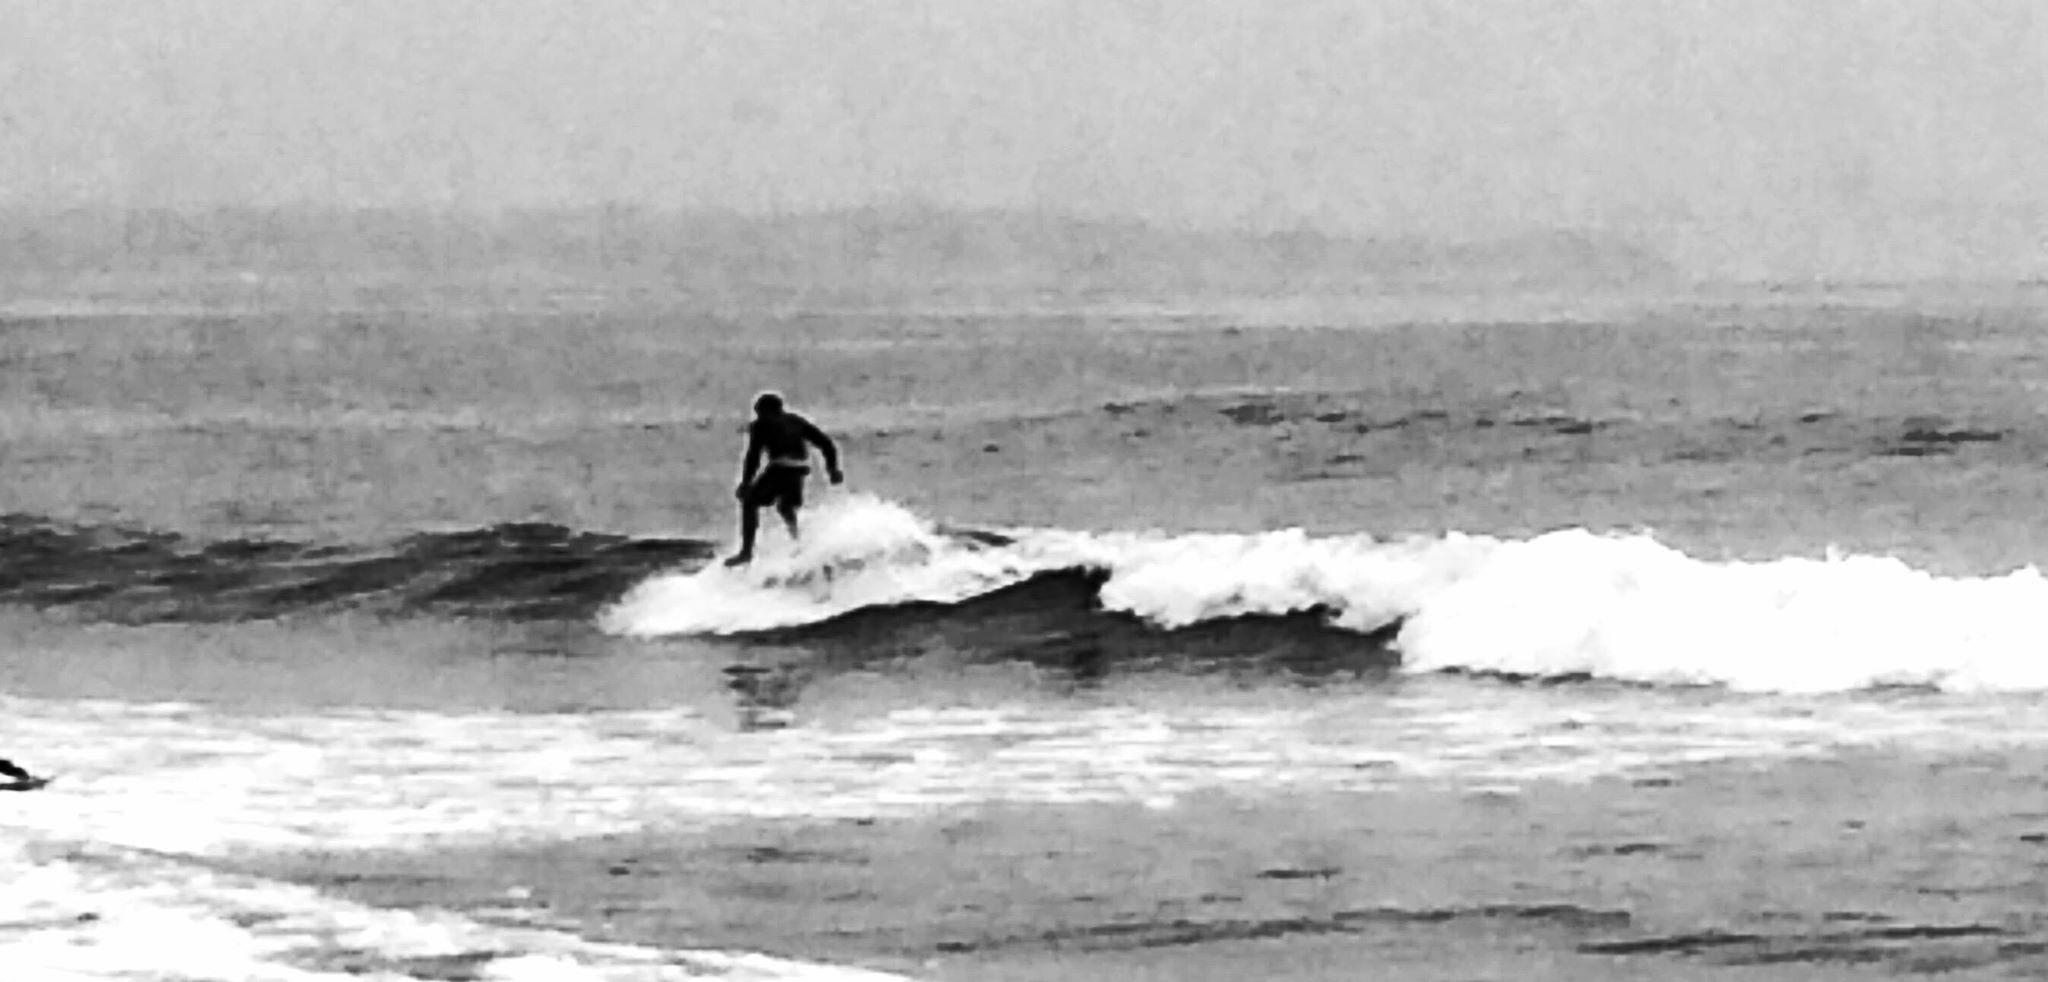 Surfer In B&W by king.chester0